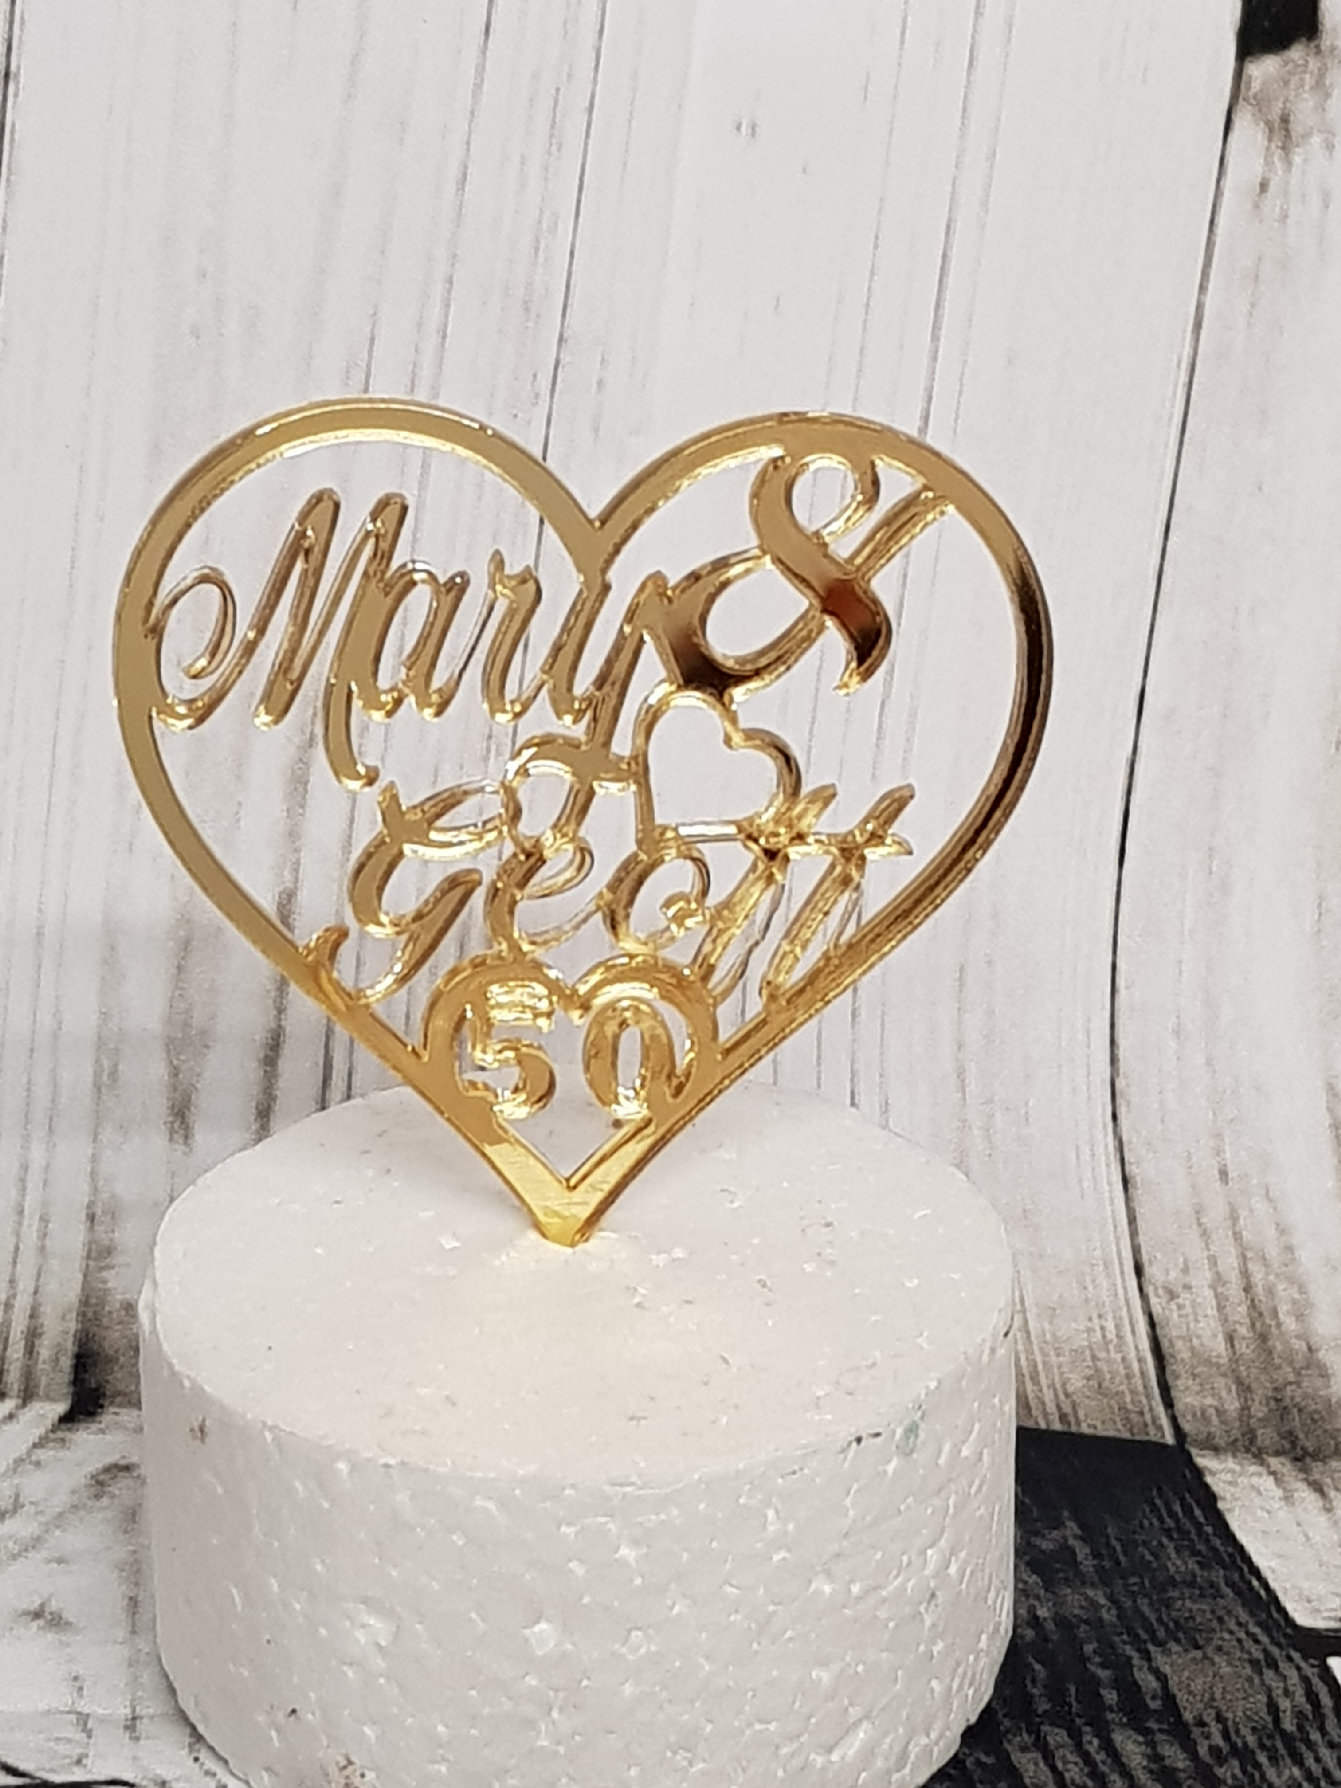 Name & Name & Number heart acrylic cake topper